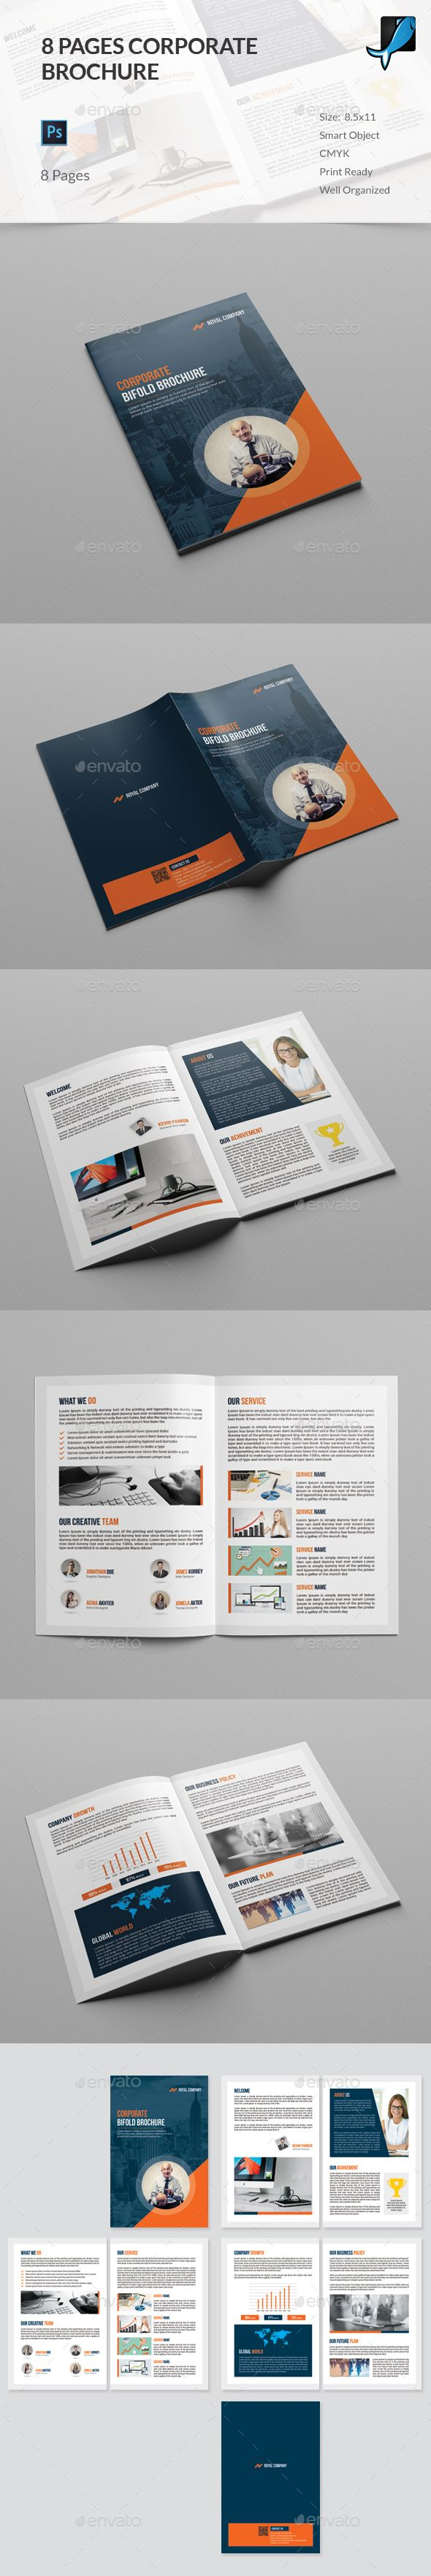 Page Brochure Photoshop PSD Brochure Template Template - 8 page brochure template